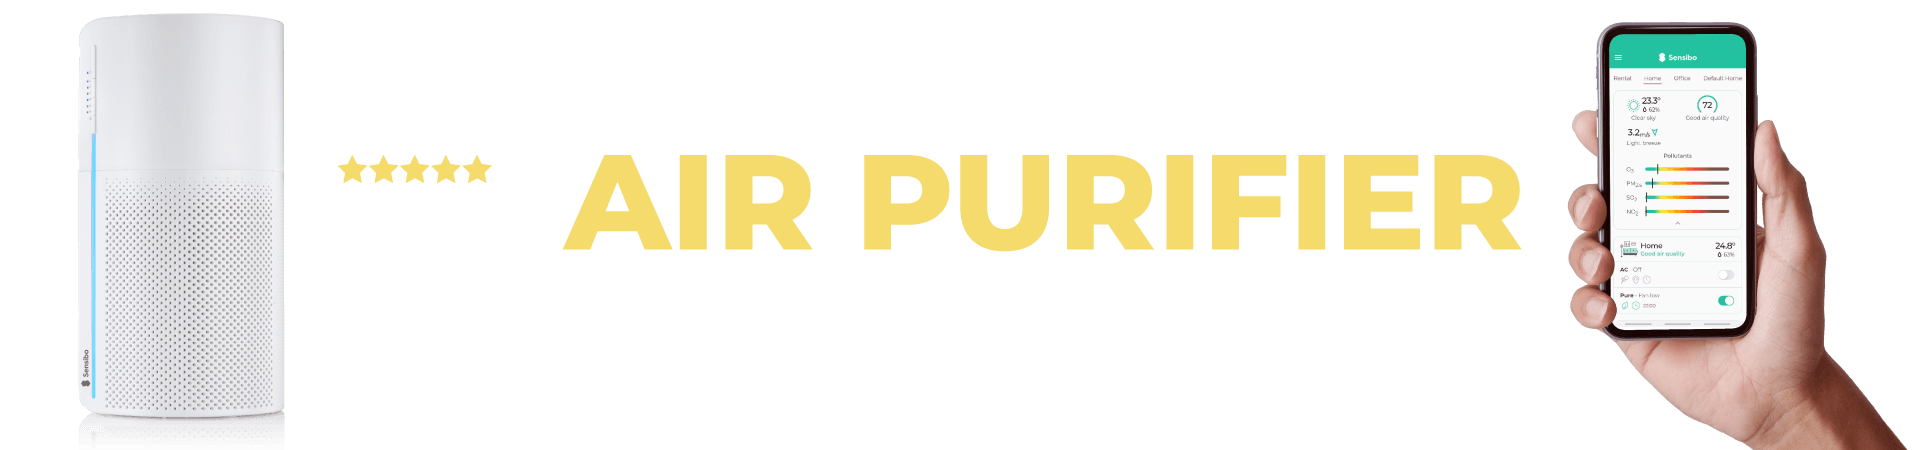 Sensibo app controlled air purifier with smart sensing technology